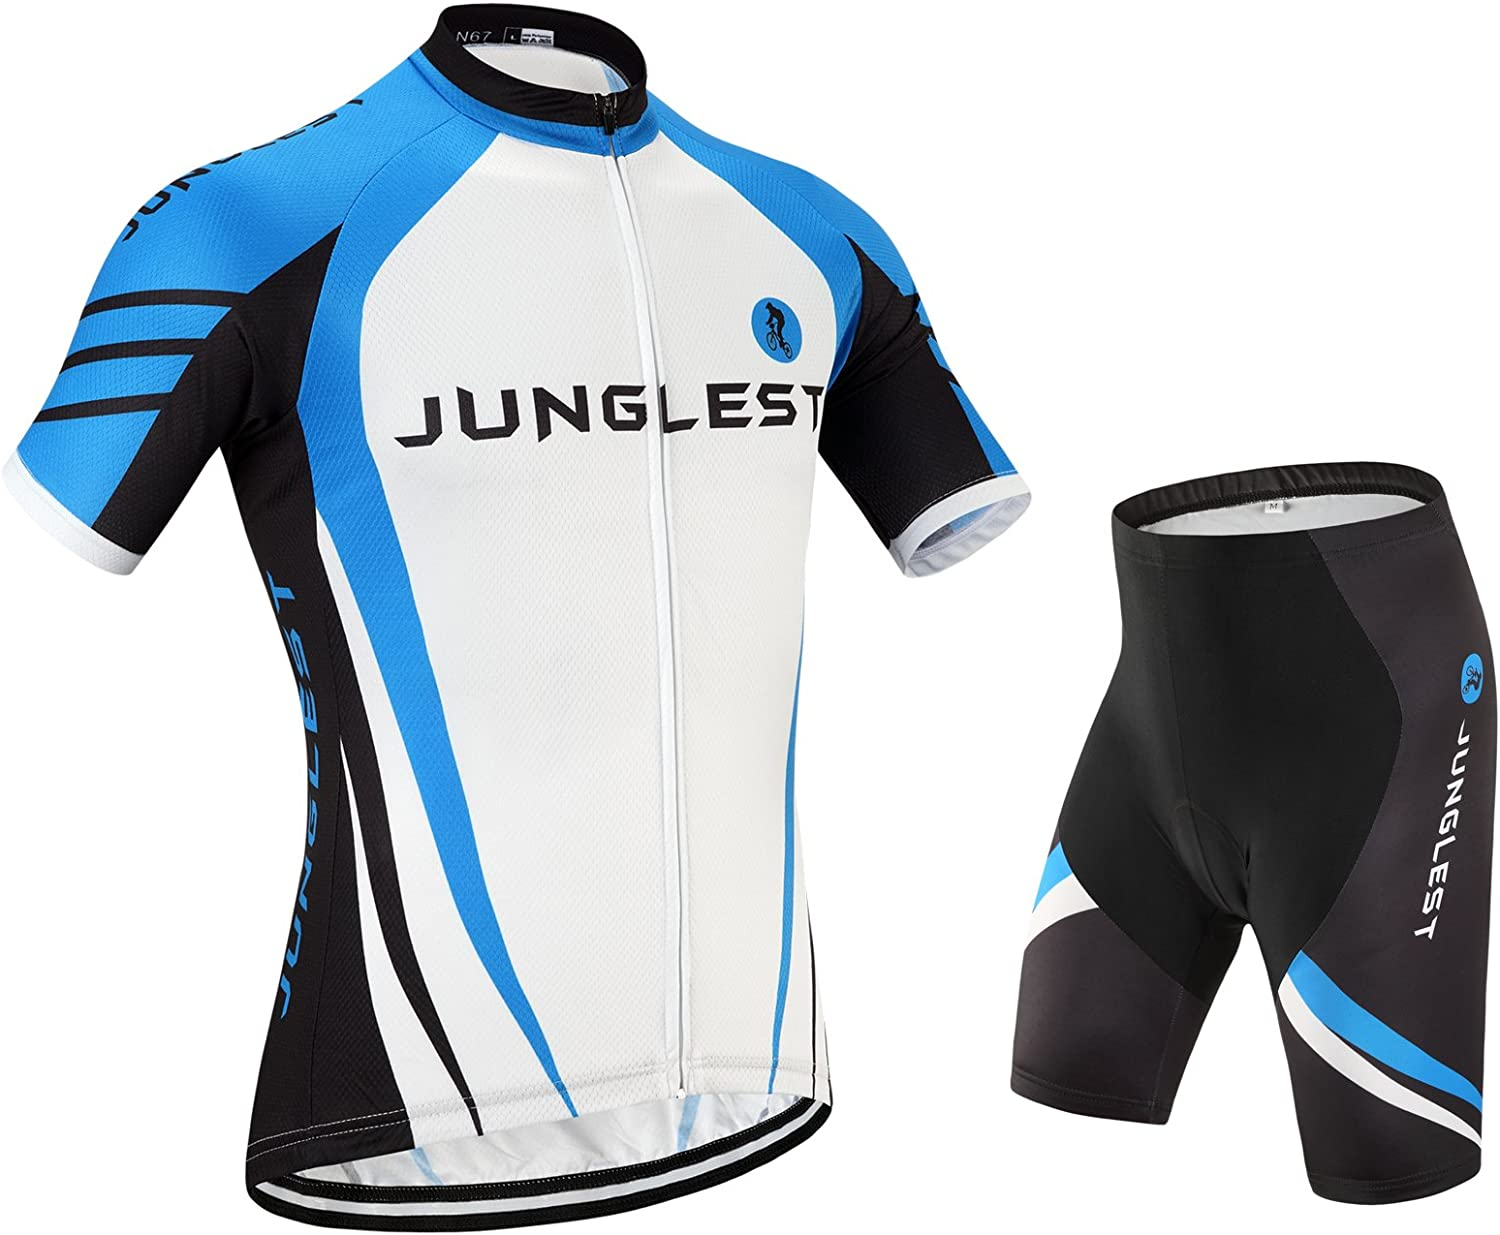 Cycling jersey Set, Maillot de Cyclisme Wen Homme Short sleeve Manches Courtes(S5XL,option bib Cuissard,3D pad Coussin) N67